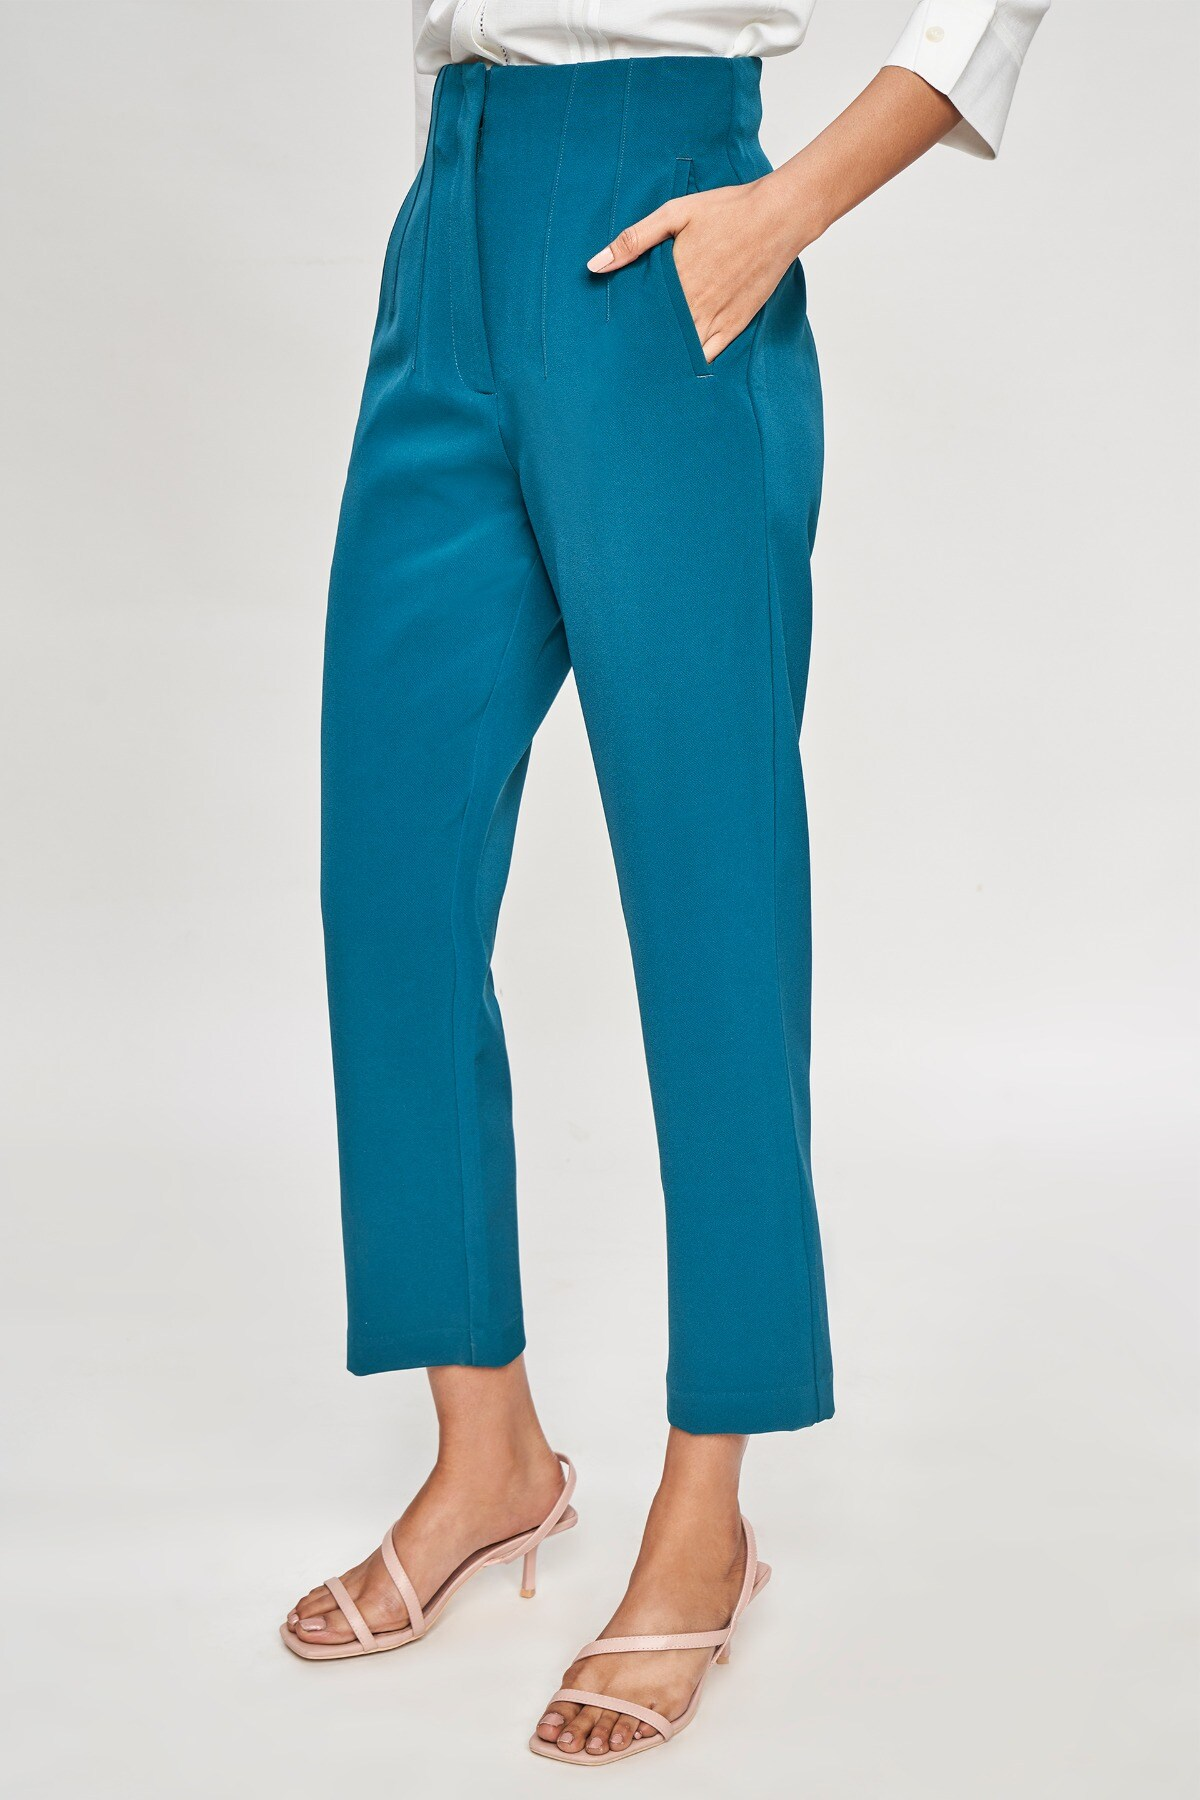 AND   Teal Solid  Bottom